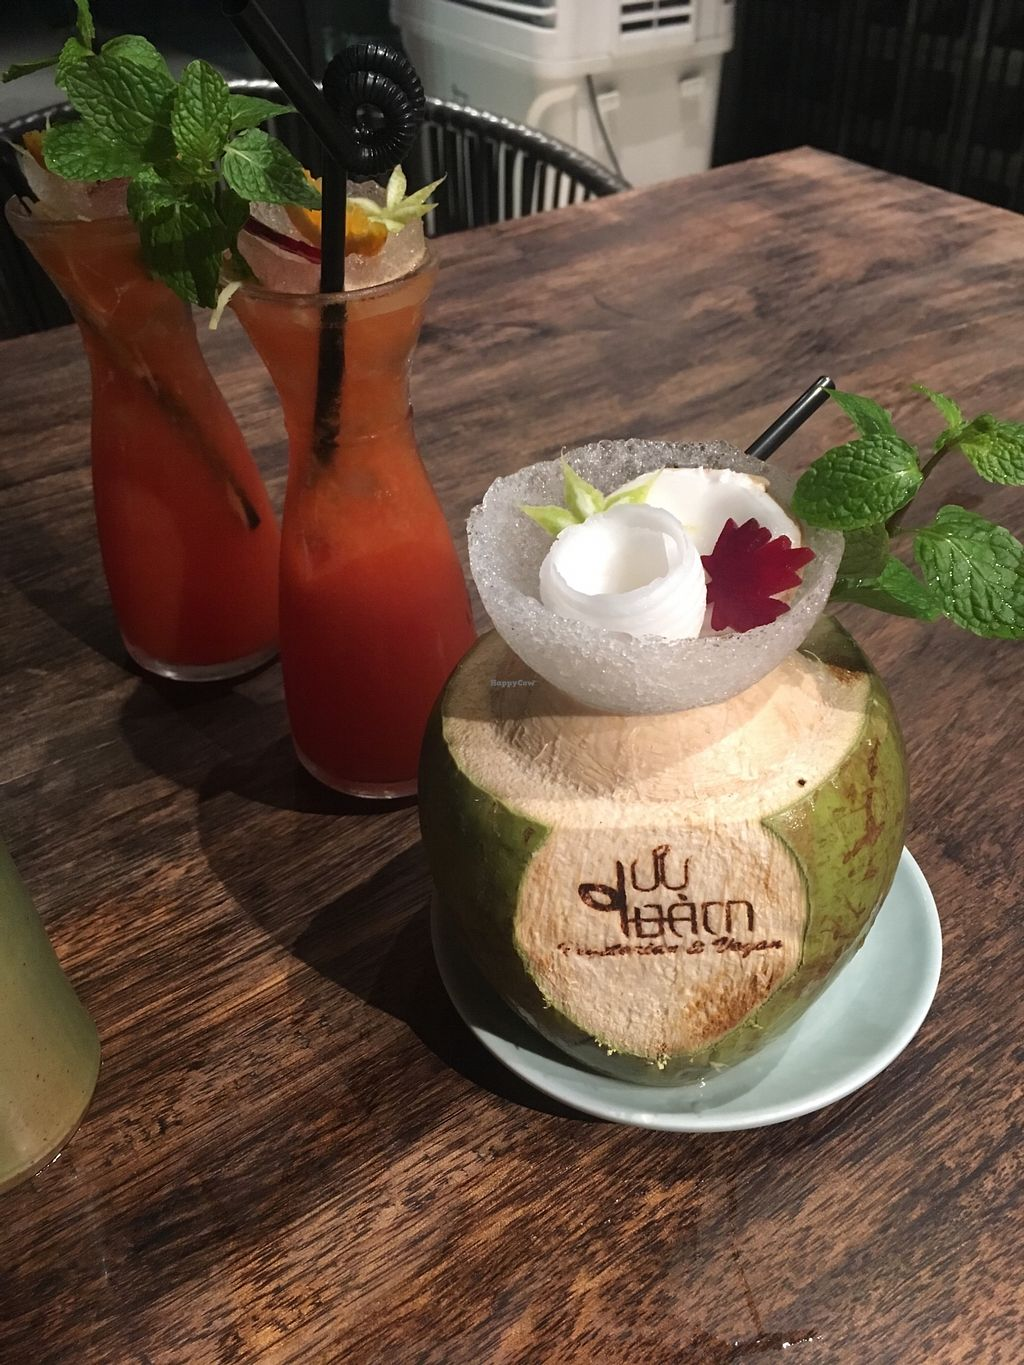 """Photo of Uu Dam Chay  by <a href=""""/members/profile/Veganville"""">Veganville</a> <br/>Vegan sushi, vegan main (platter), fresh coconut and orange juice with ginger ale <br/> March 7, 2018  - <a href='/contact/abuse/image/73265/367799'>Report</a>"""